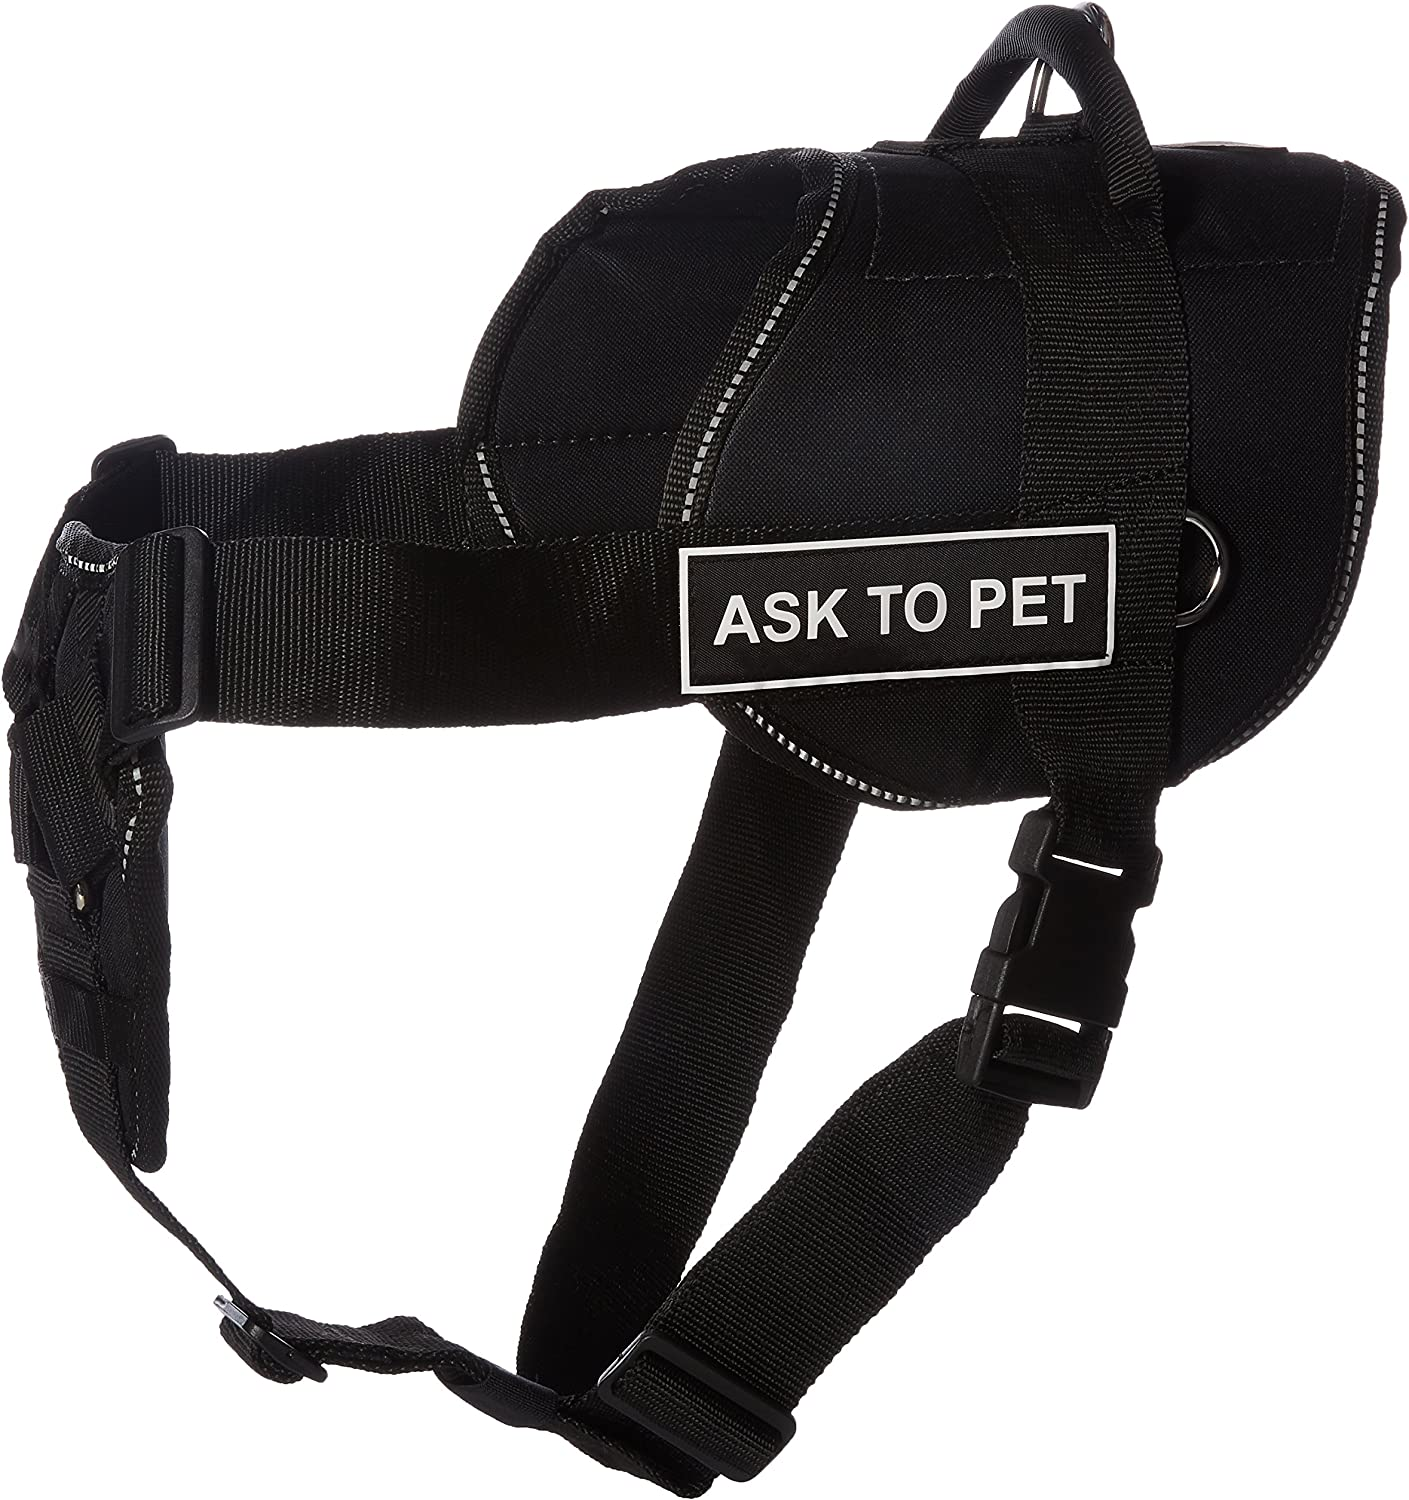 Dean & Tyler DT H FUNCH A2P RTXL Fun Ask To Pet  Dog Harness with Padded Chest Piece, Fits Girth Size 86cm to 119cm, XLarge, Black with Reflective Trim